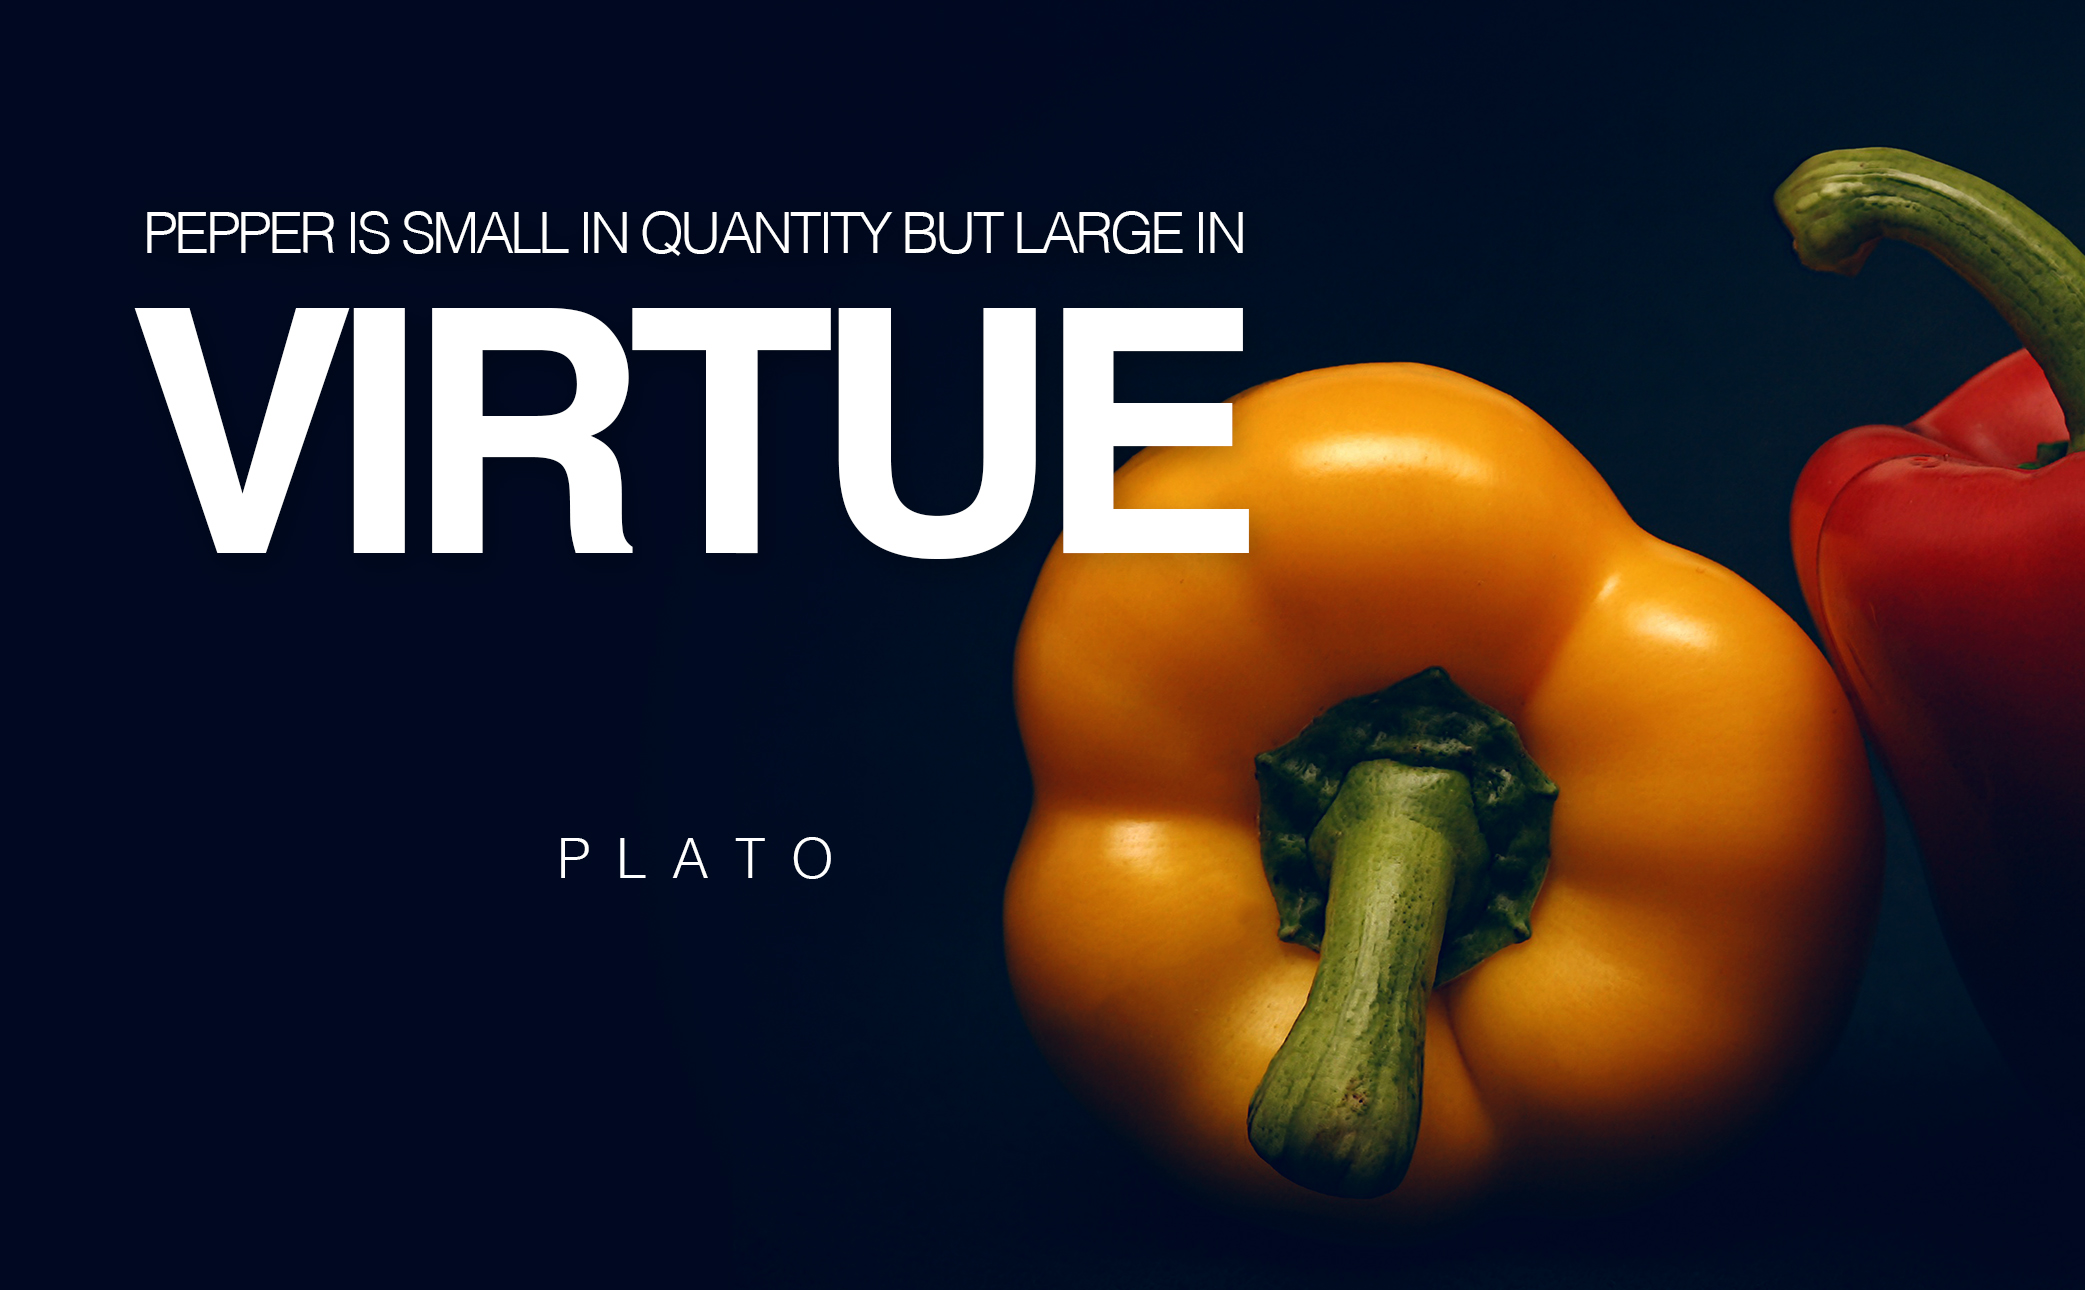 featured-image-large-in-virtue